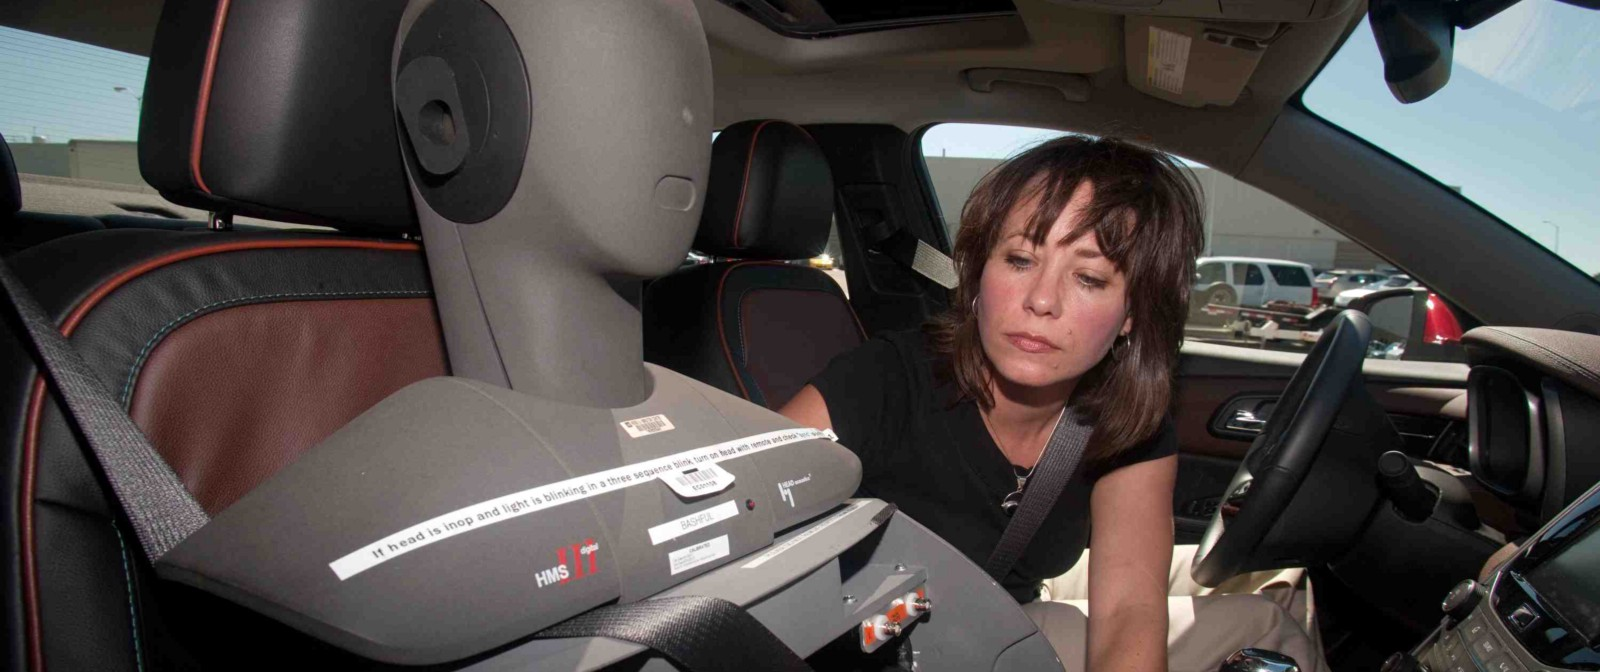 How Gm Makes A Car Sound Like What Is Supposed To Kara Gordon And An Aachen Head Image Courtesy